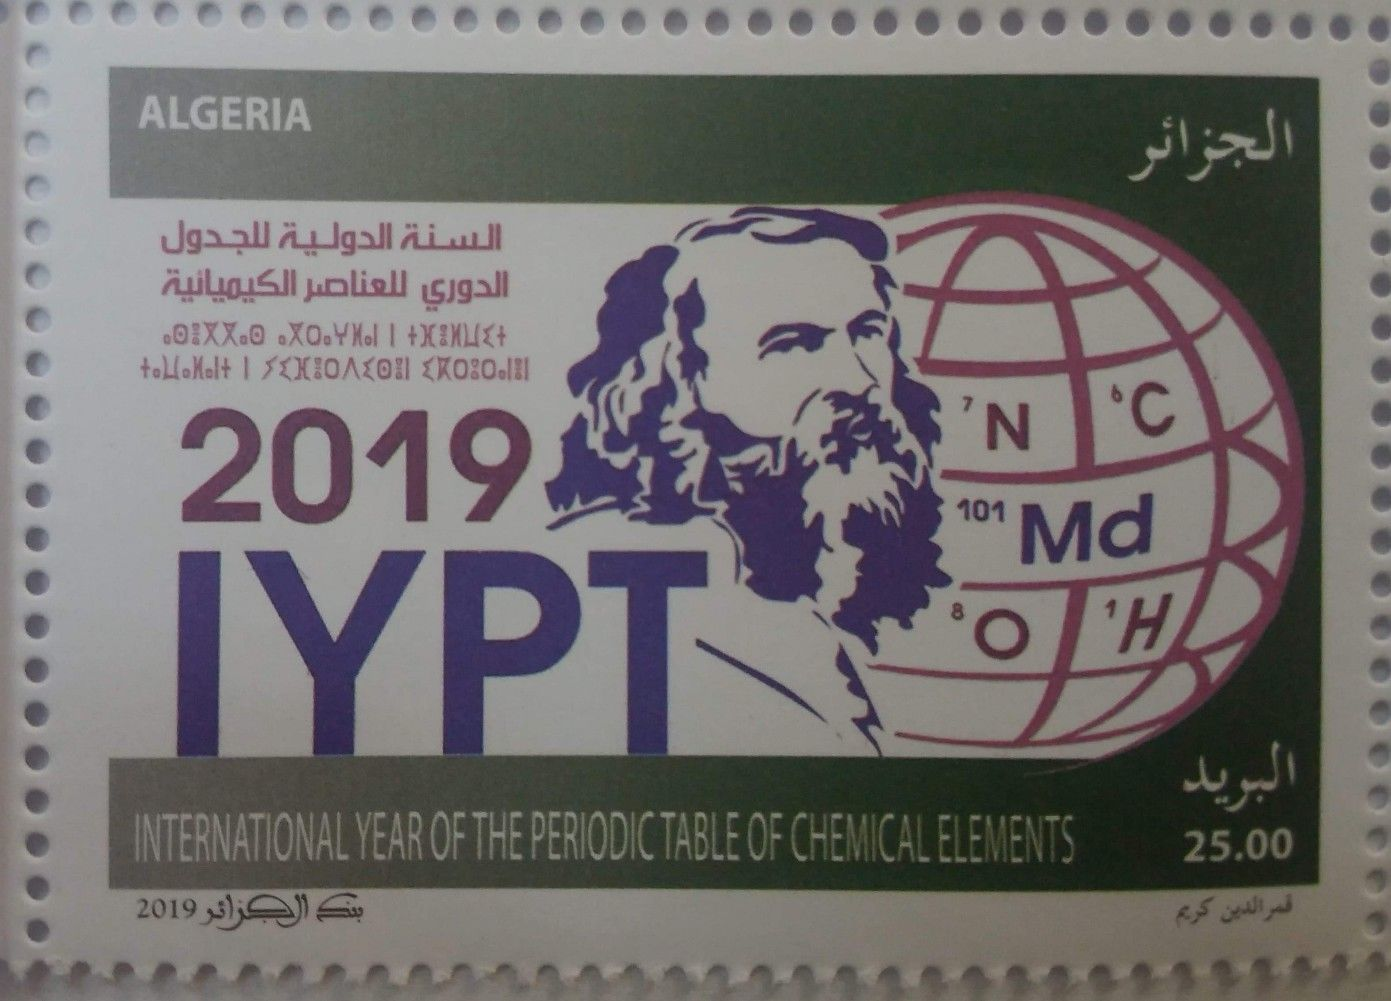 Algeria - International Year of the Periodic Table (January 2, 2019)